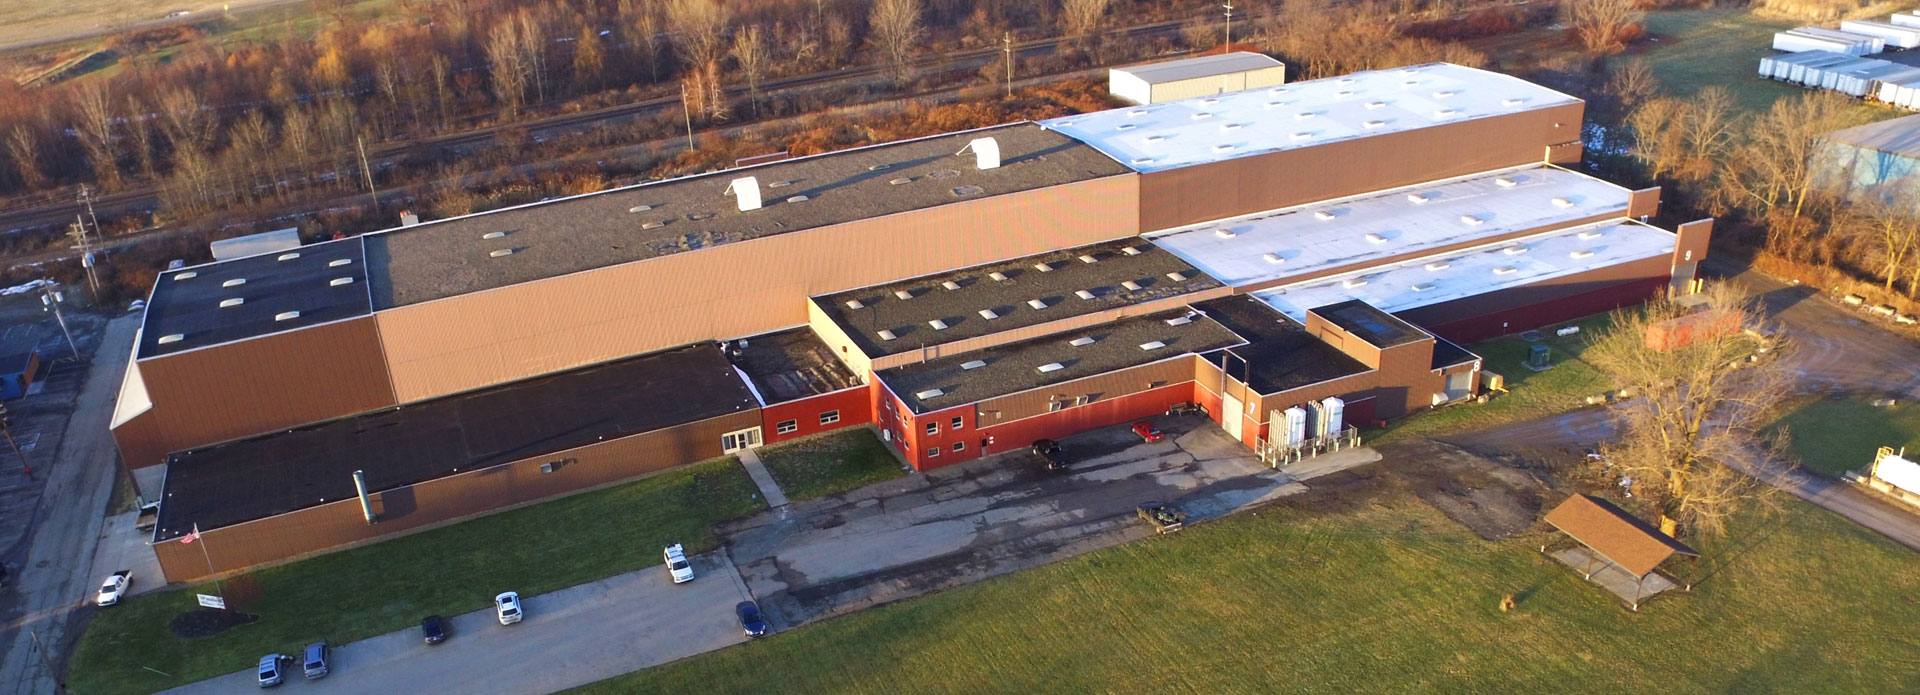 Drone shot of The Warren Company